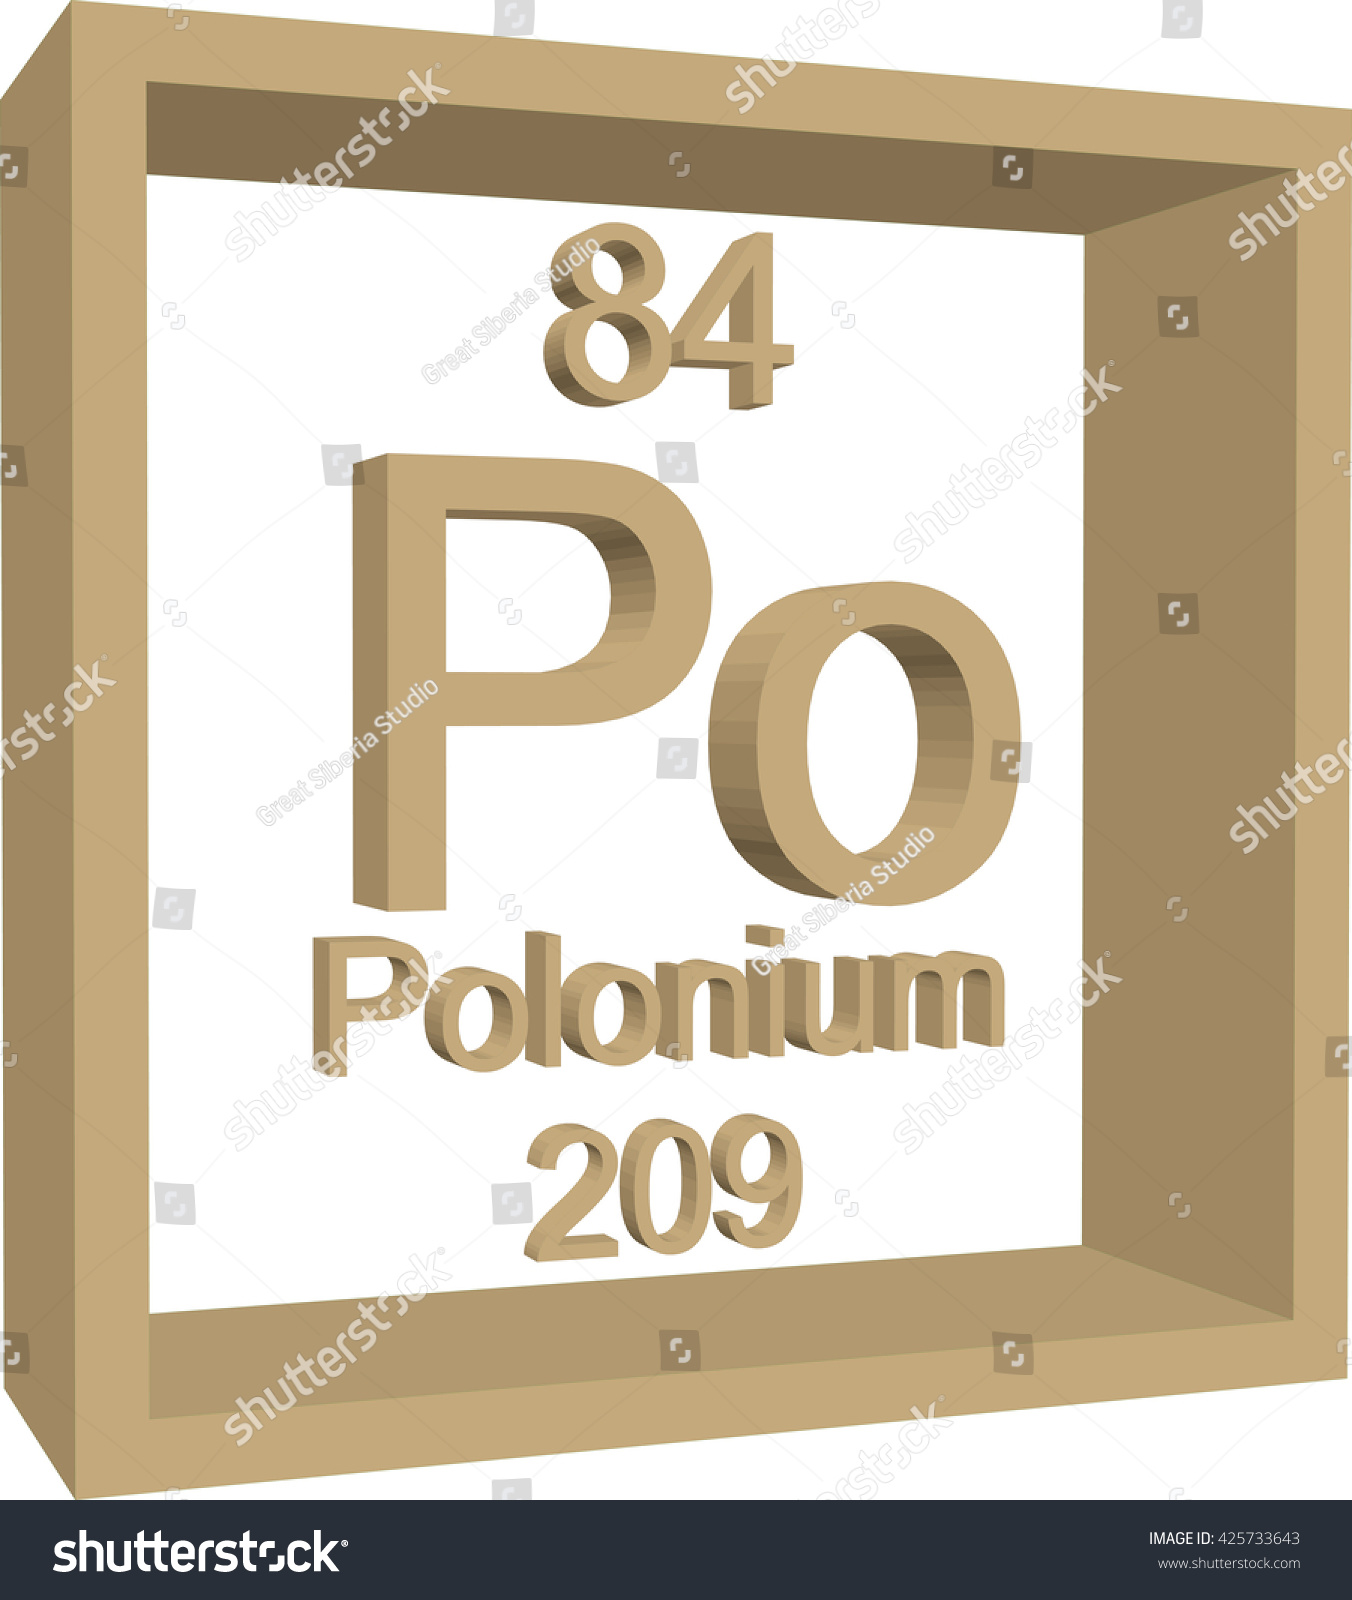 Po element periodic table image collections periodic table images po element periodic table image collections periodic table images po element periodic table images periodic table gamestrikefo Gallery